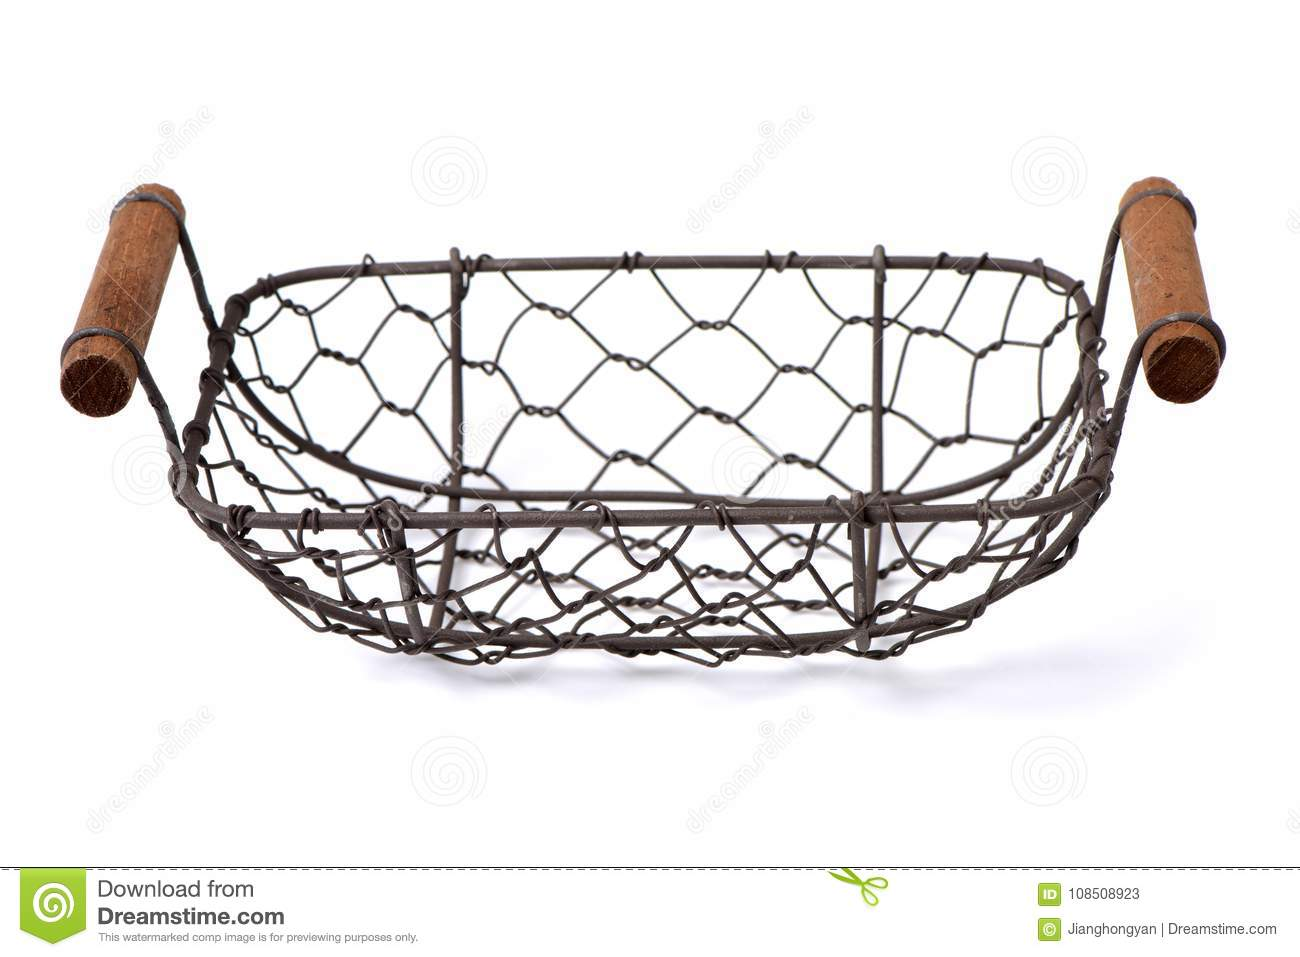 Wire egg basket stock image. Image of kitchenware, path - 108508923